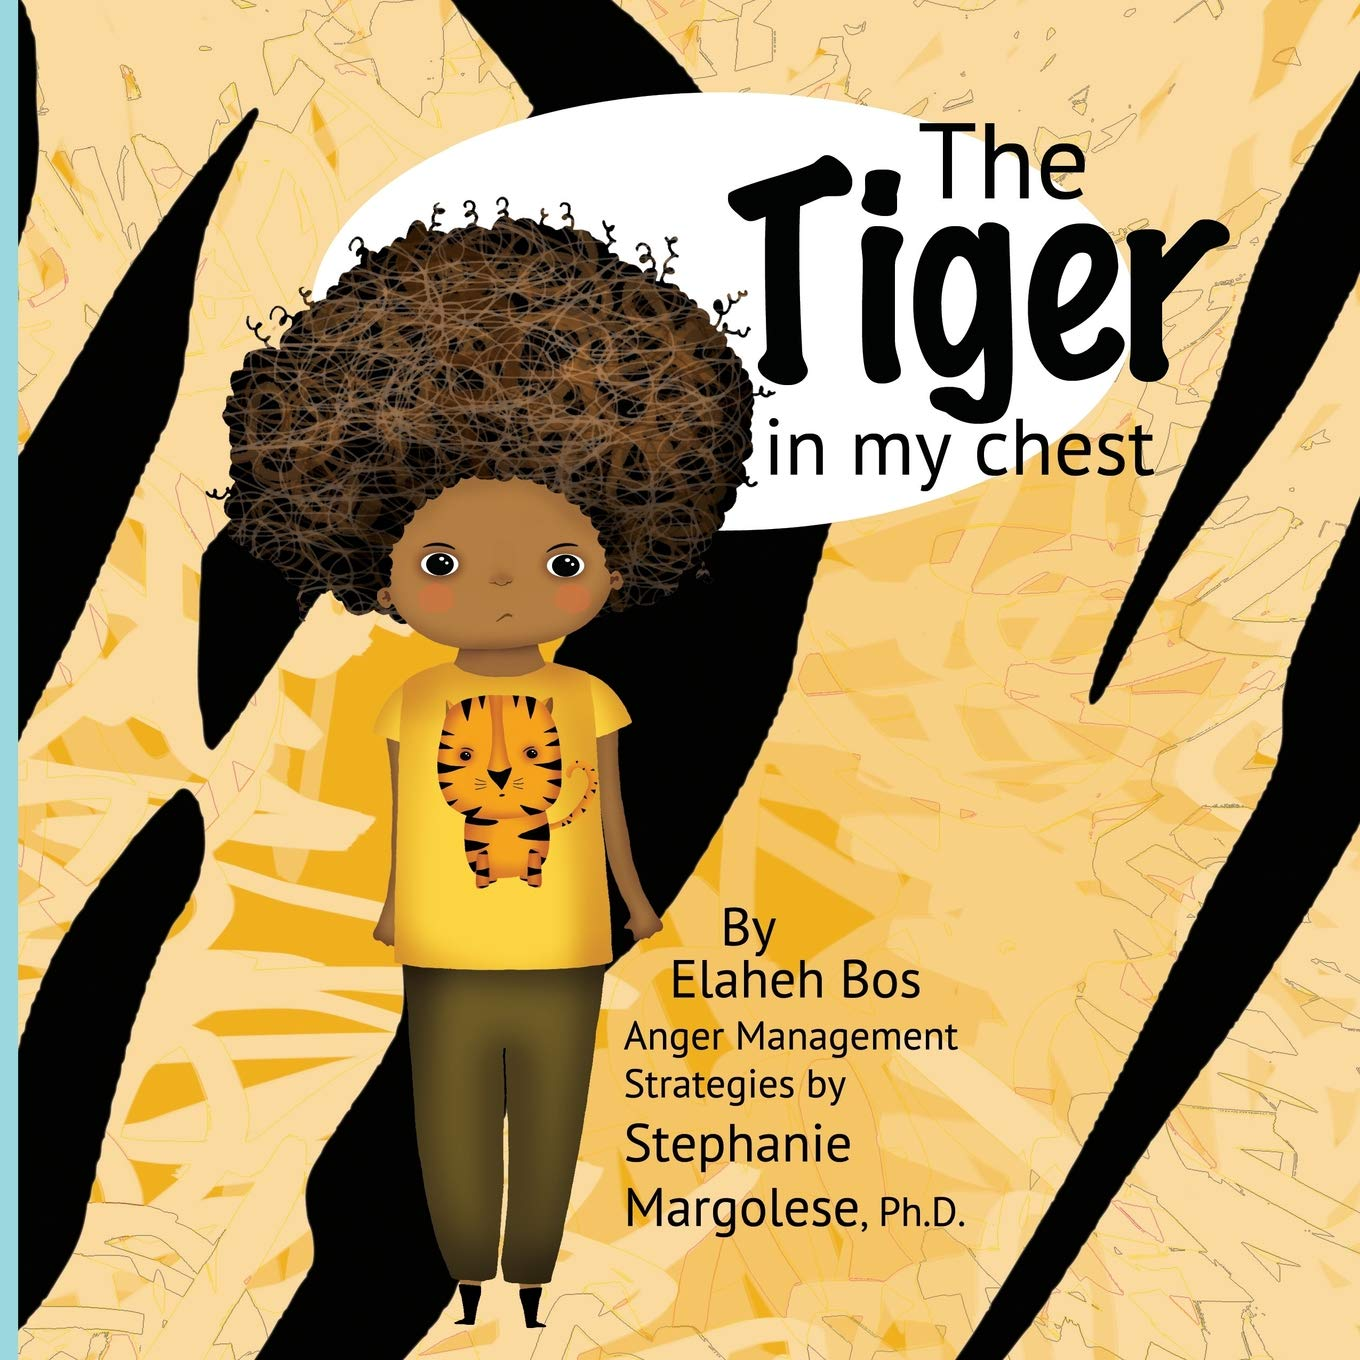 tiger my chest Elaheh Bos product image